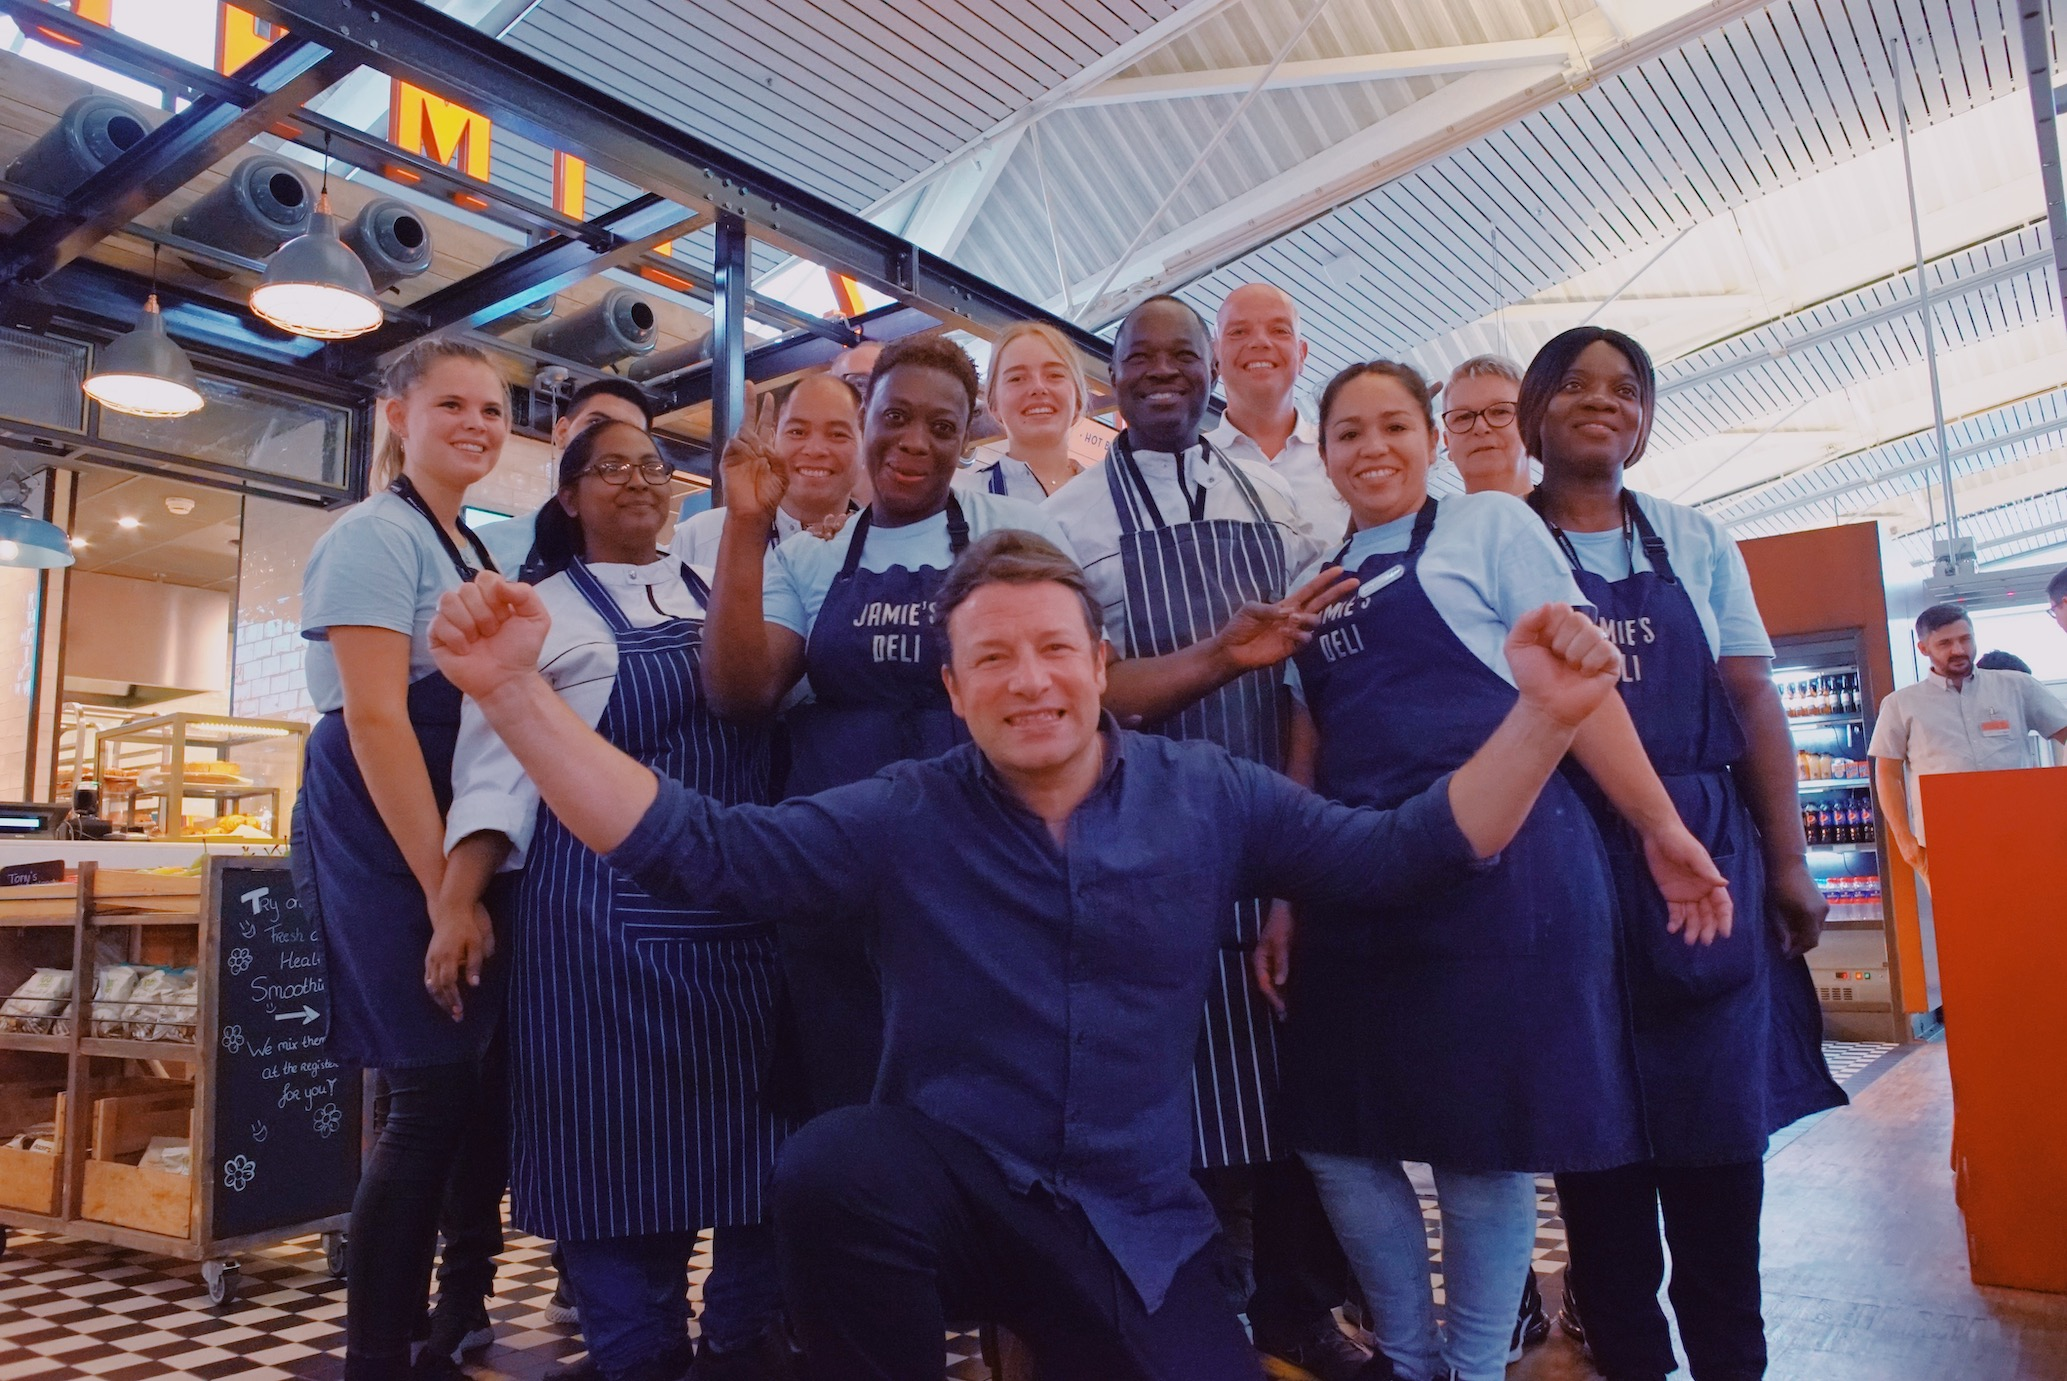 Jamie Oliver delights colleagues with flying visit to Jamie's Deli at Schiphol Airport